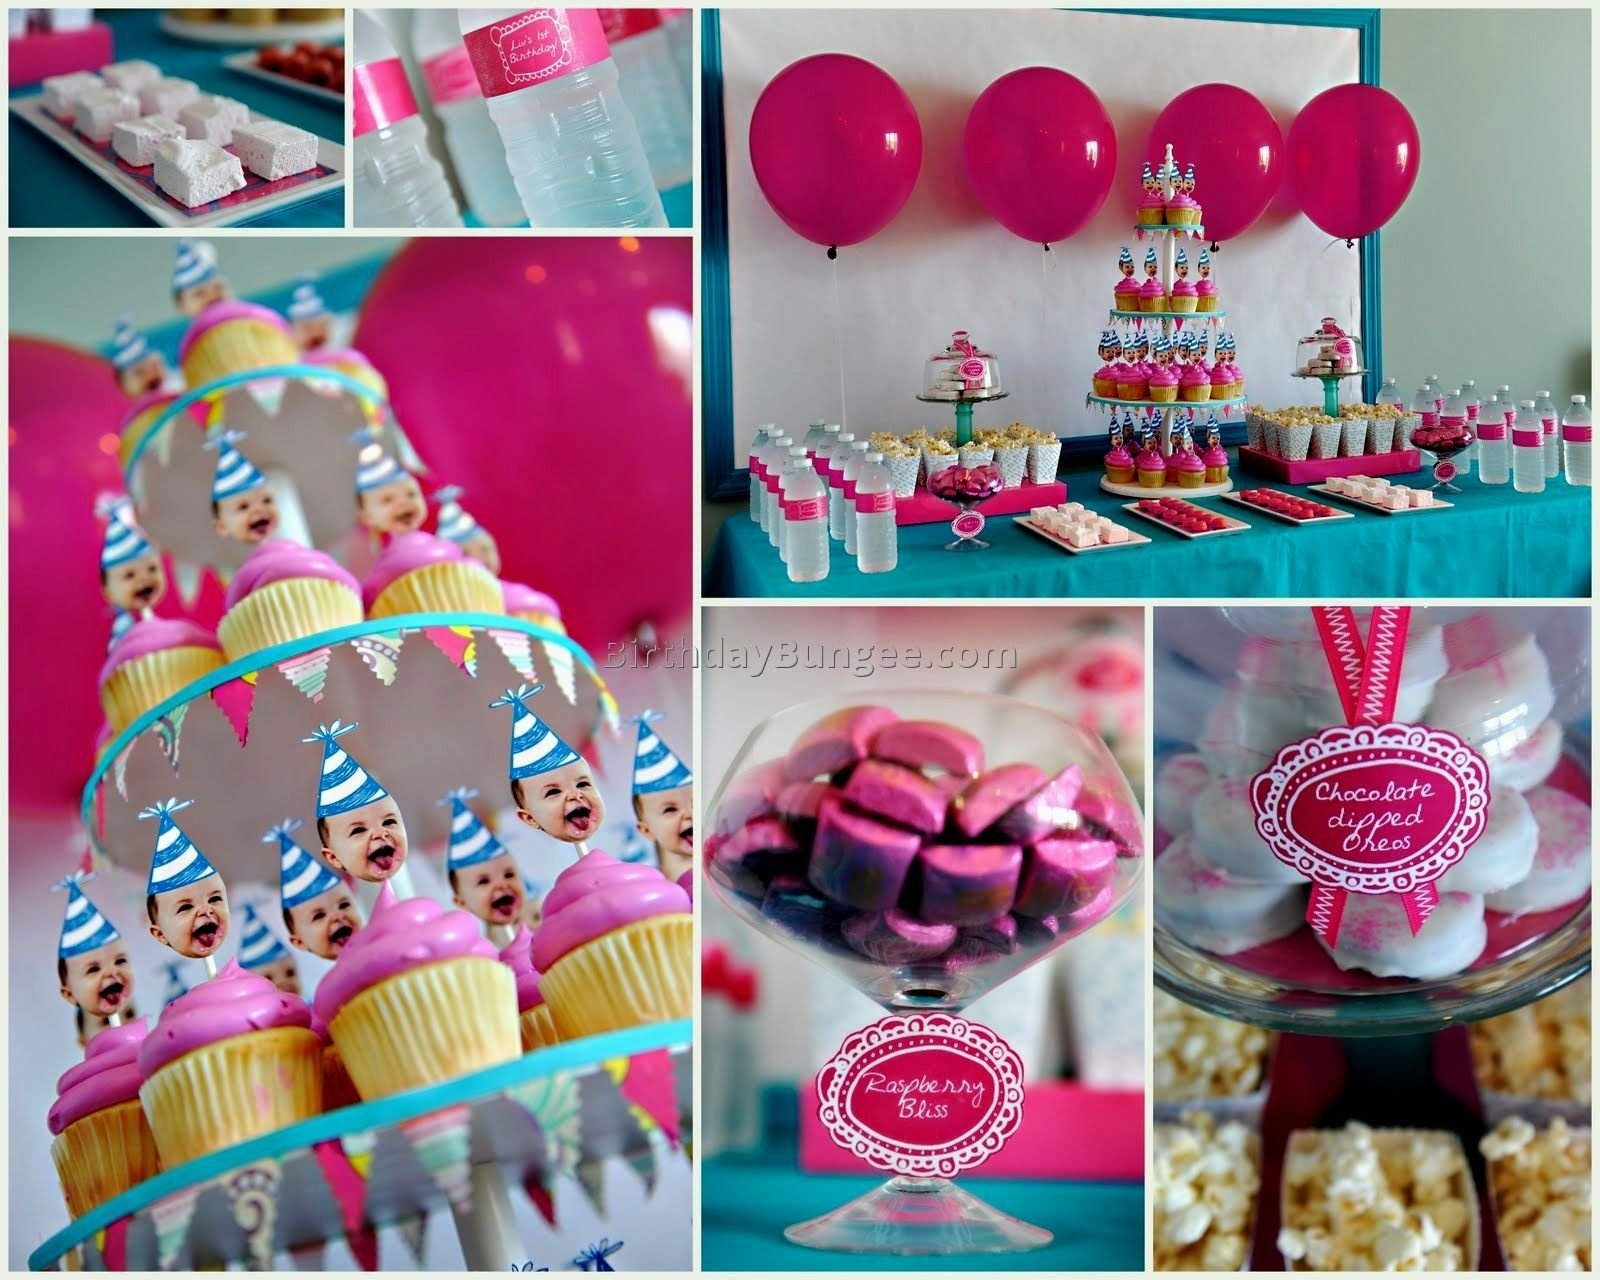 10 Wonderful Ideas For 10 Year Old Birthday themes birthday 6 year old boy birthday party ideas at home in best 1 2020